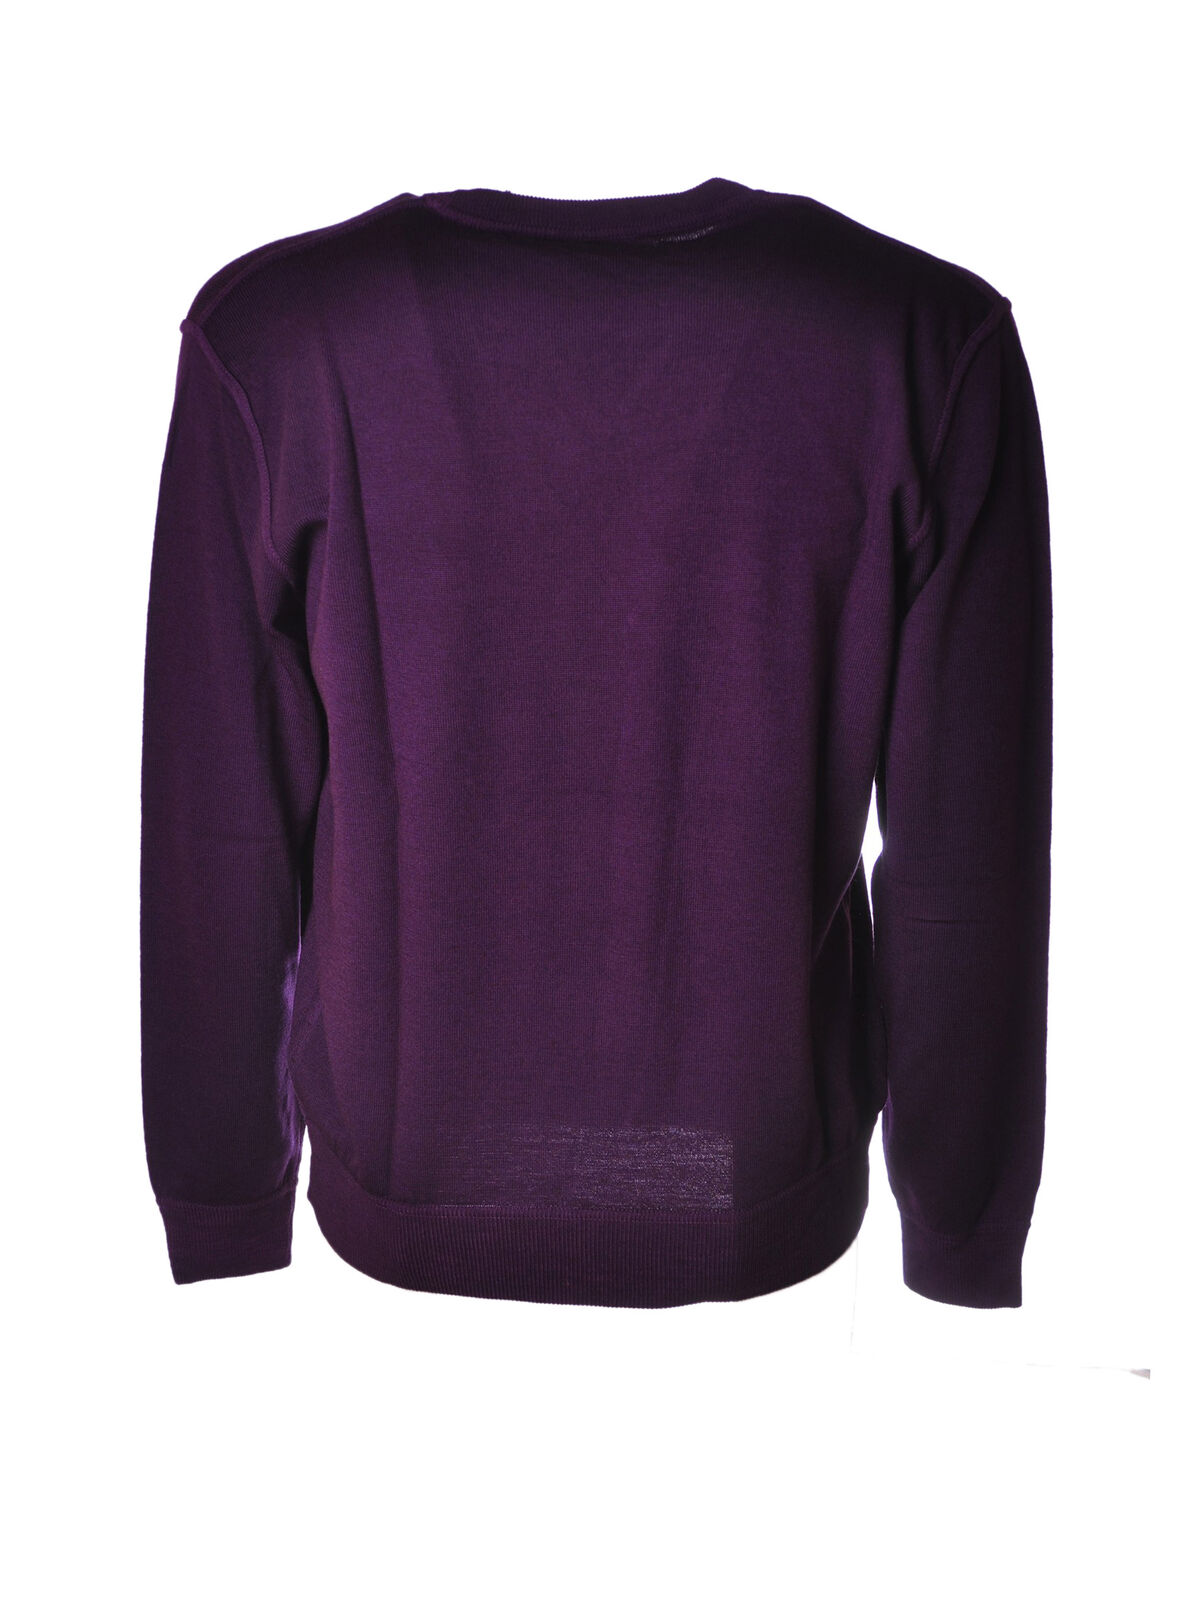 35a0c74fcaf ... Heritage Heritage Heritage - Sweaters - Male - Viola - 4640022A185425  17a602